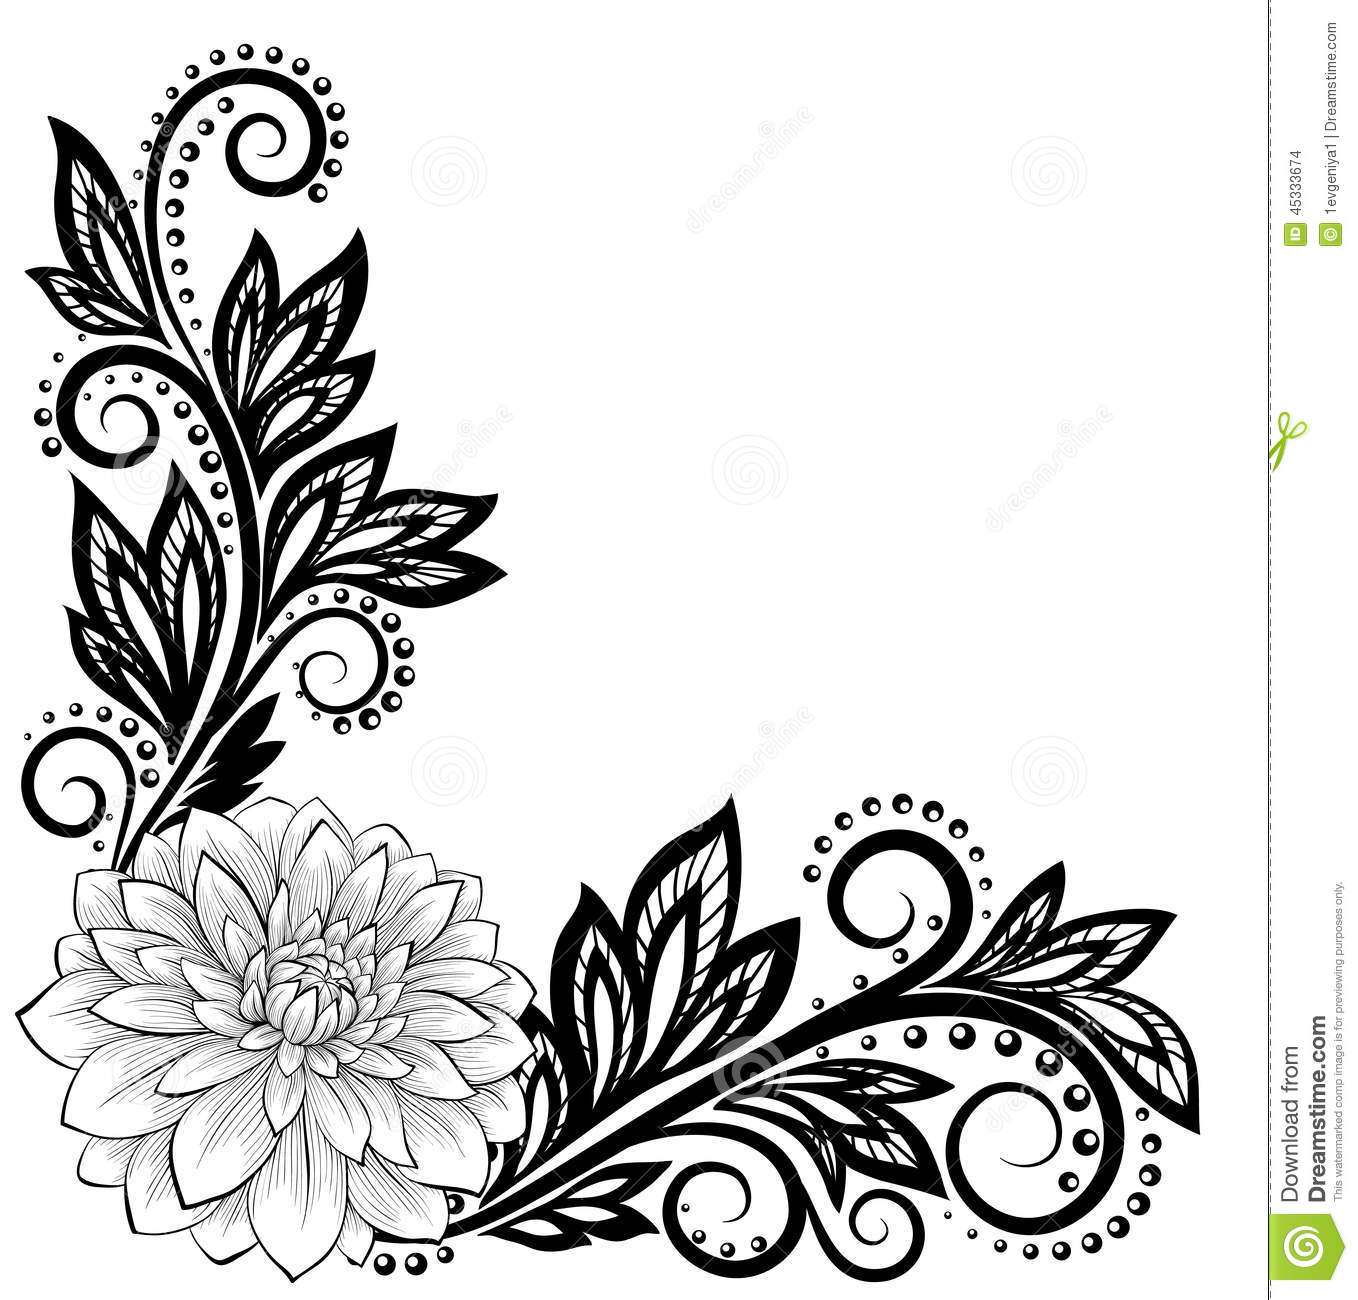 Monochrome Black And White Lace Flower In The Corner With Space For